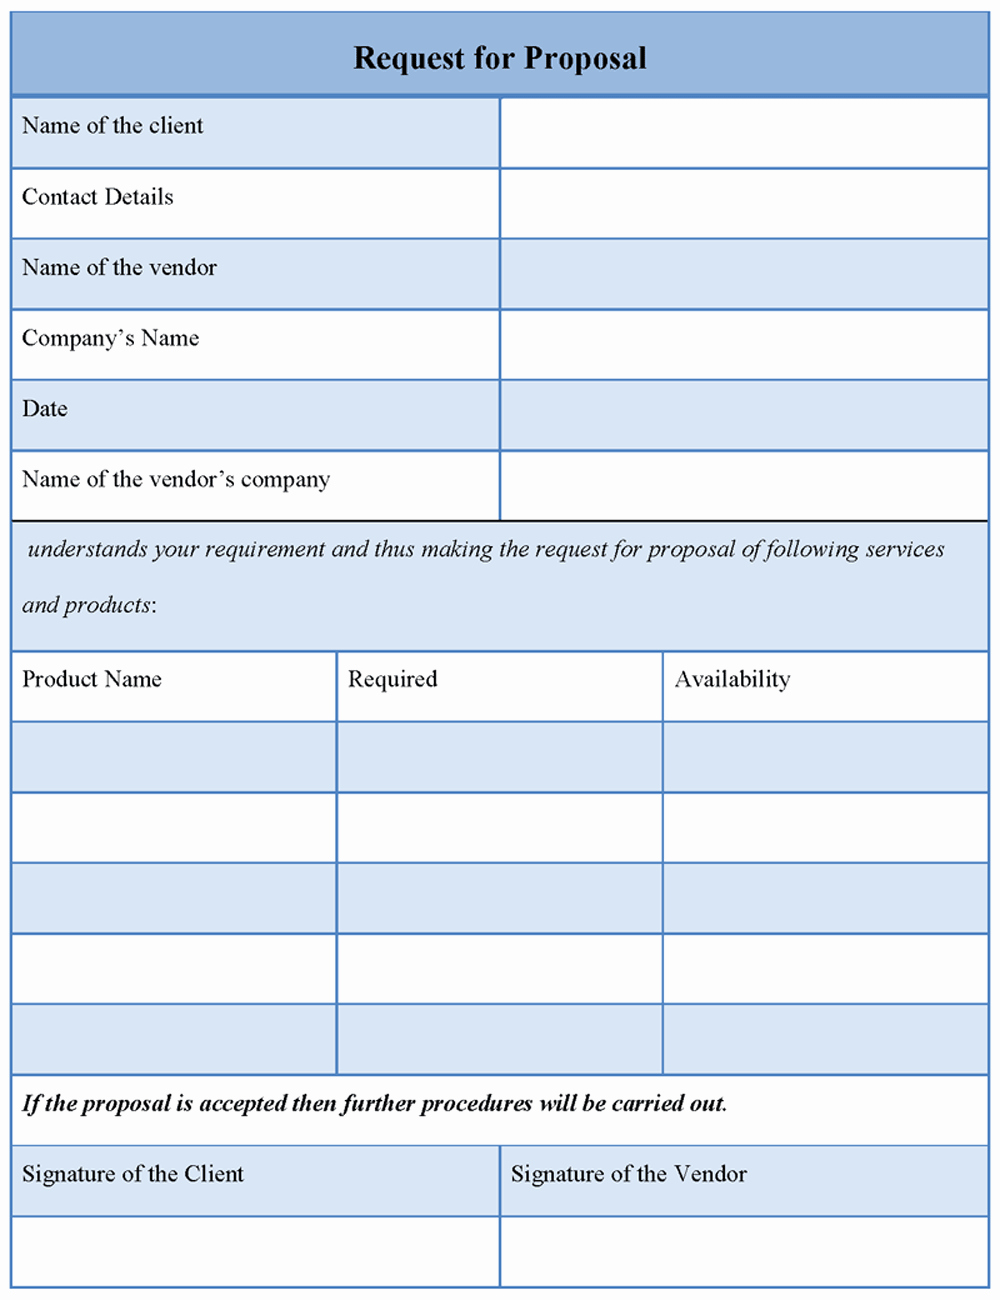 Simple Rfp Template Word Beautiful Download Microsoft Fice Request for Proposal Template